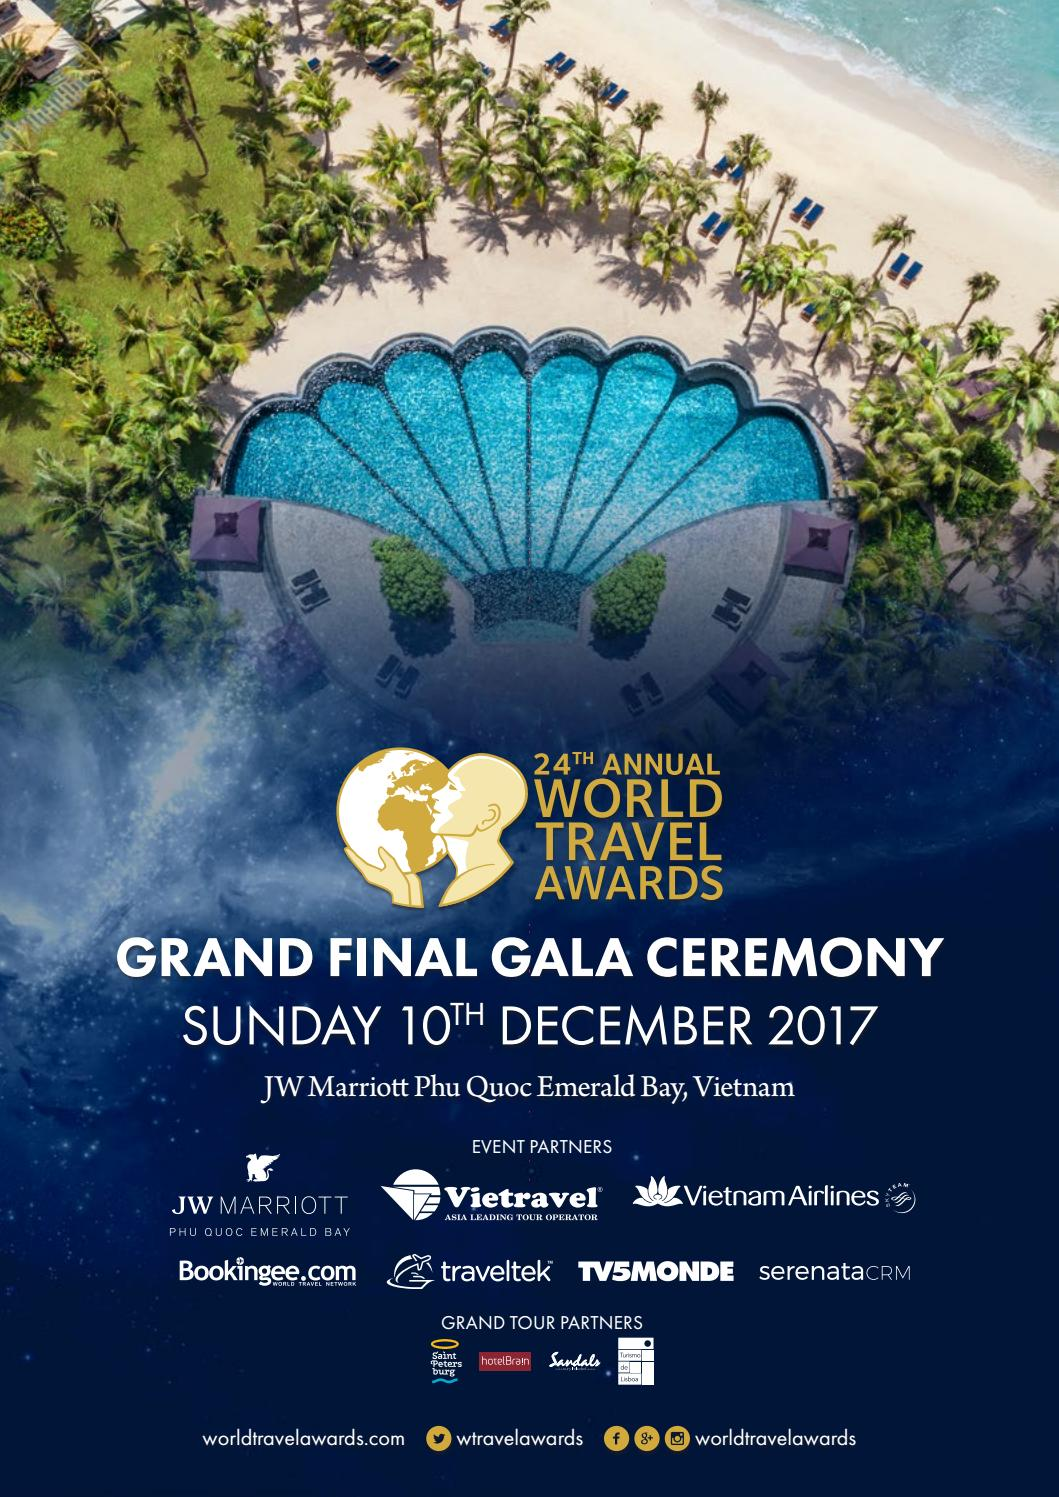 Maisons Du Monde Discount Code World Travel Awards Grand Final Gala Ceremony 2017 By World Travel